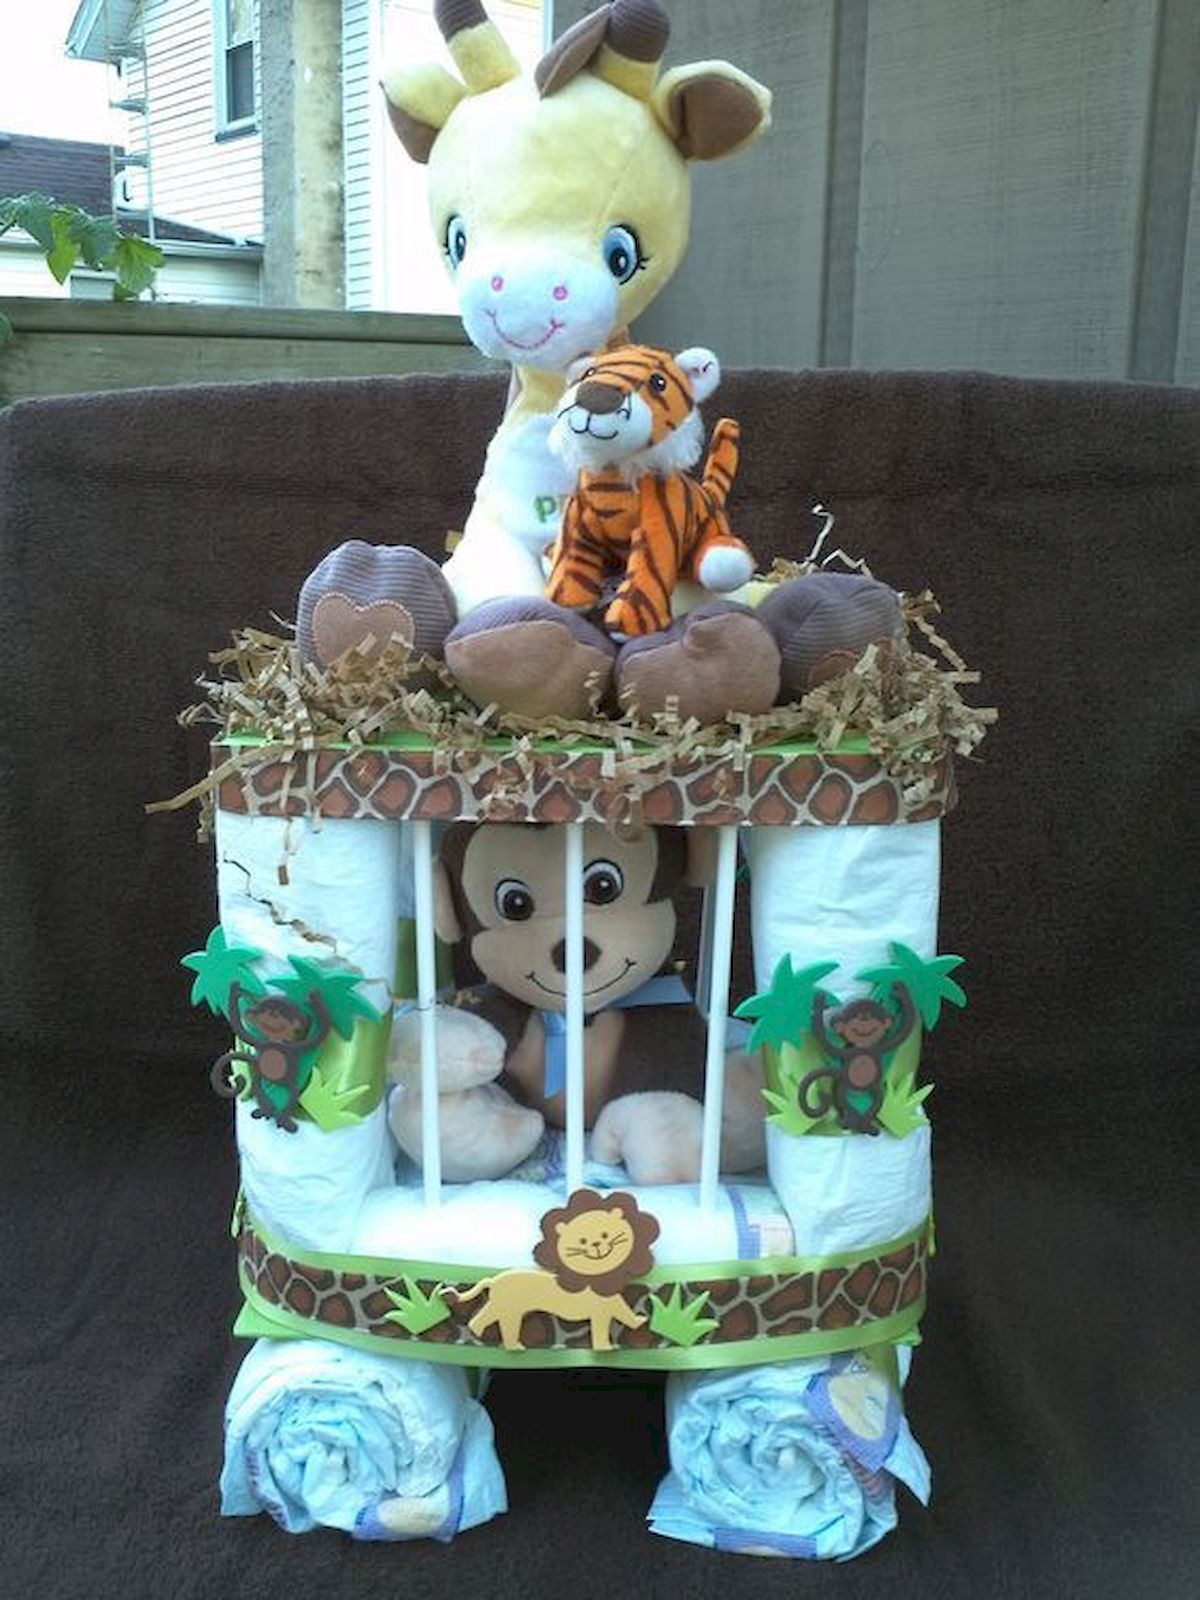 45 Cool Baby Shower Gift Ideas For Baby Boy Diy Baby Shower Gifts Baby Shower Gifts For Boys Monkey Baby Shower